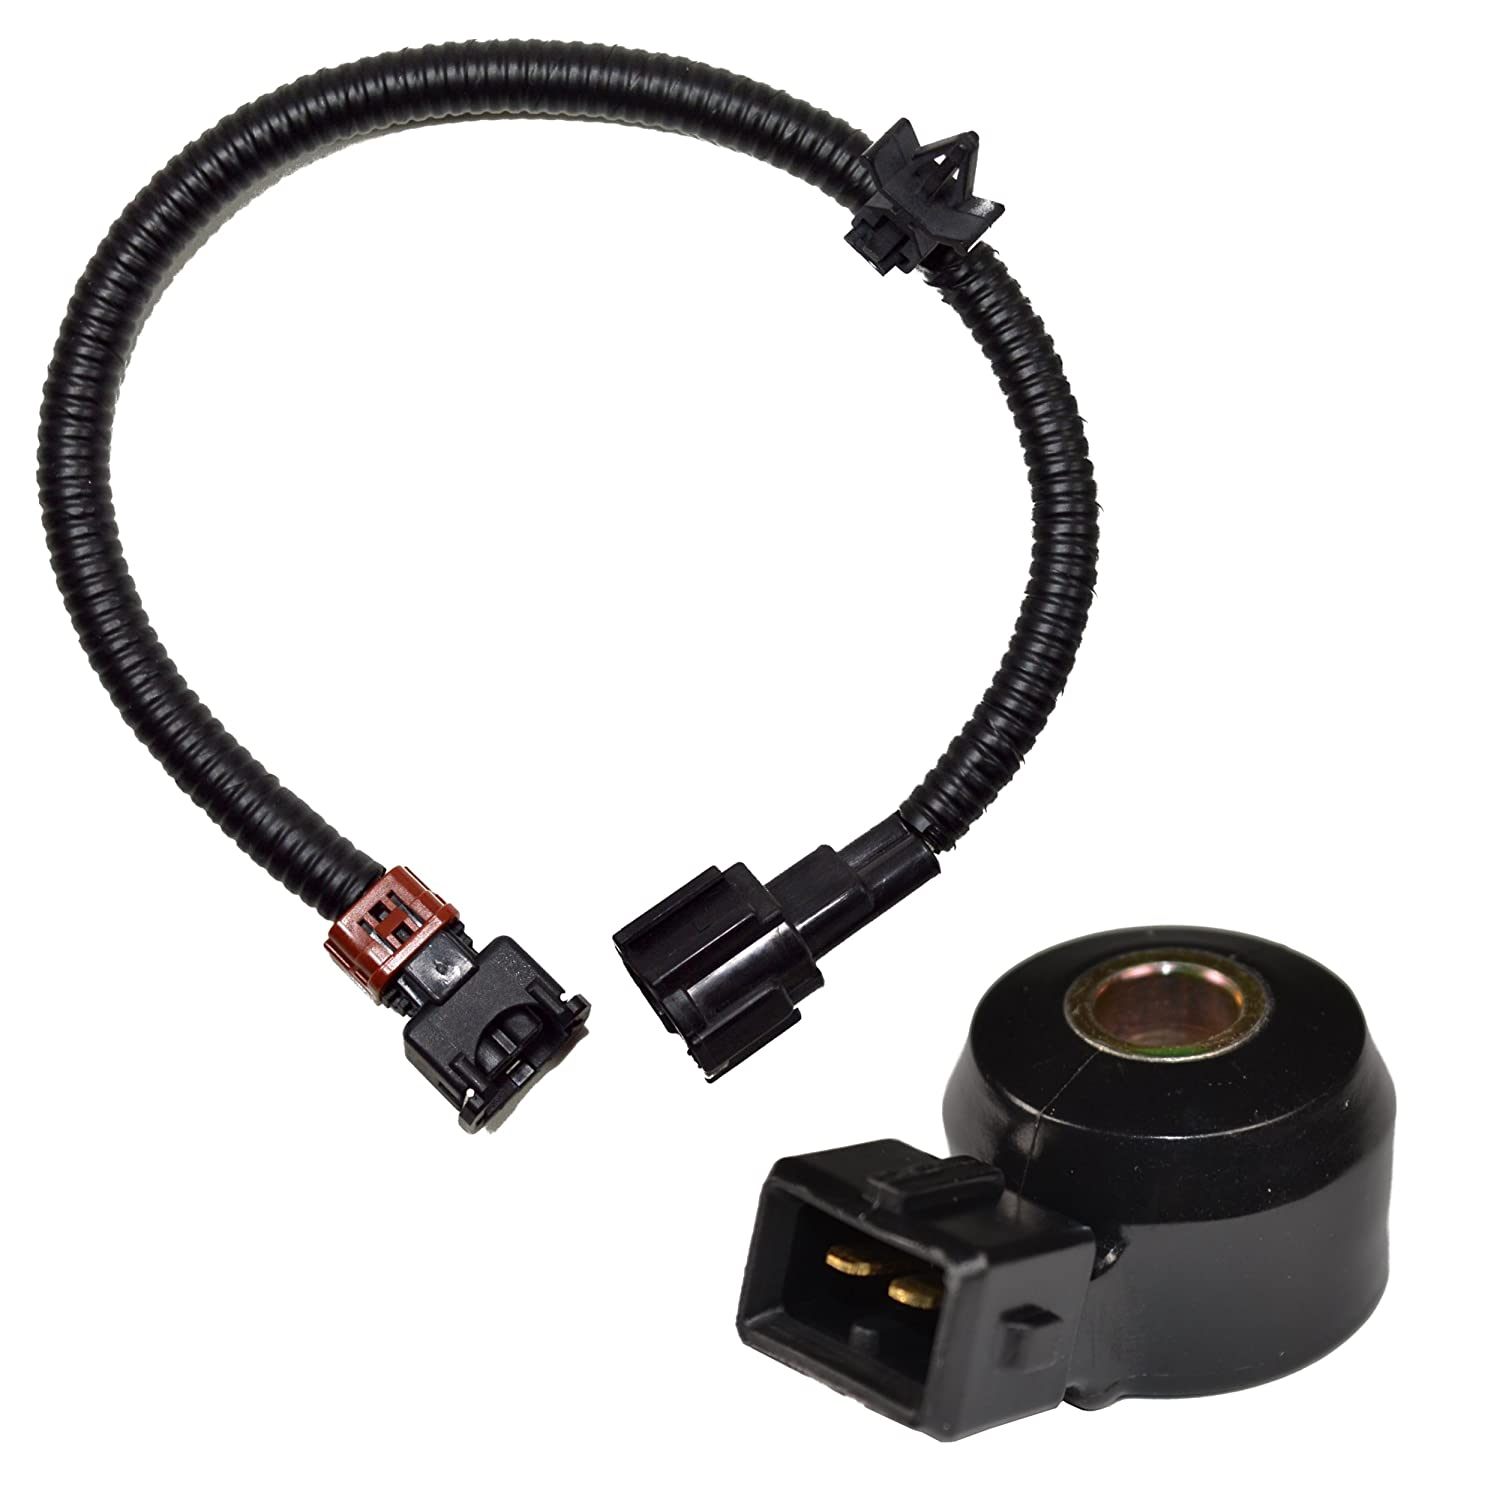 81n2NnpuFPL._SL1500_ amazon com hqrp knock sensor w wiring harness for nissan 200sx 2001 nissan xterra knock sensor wiring harness at suagrazia.org